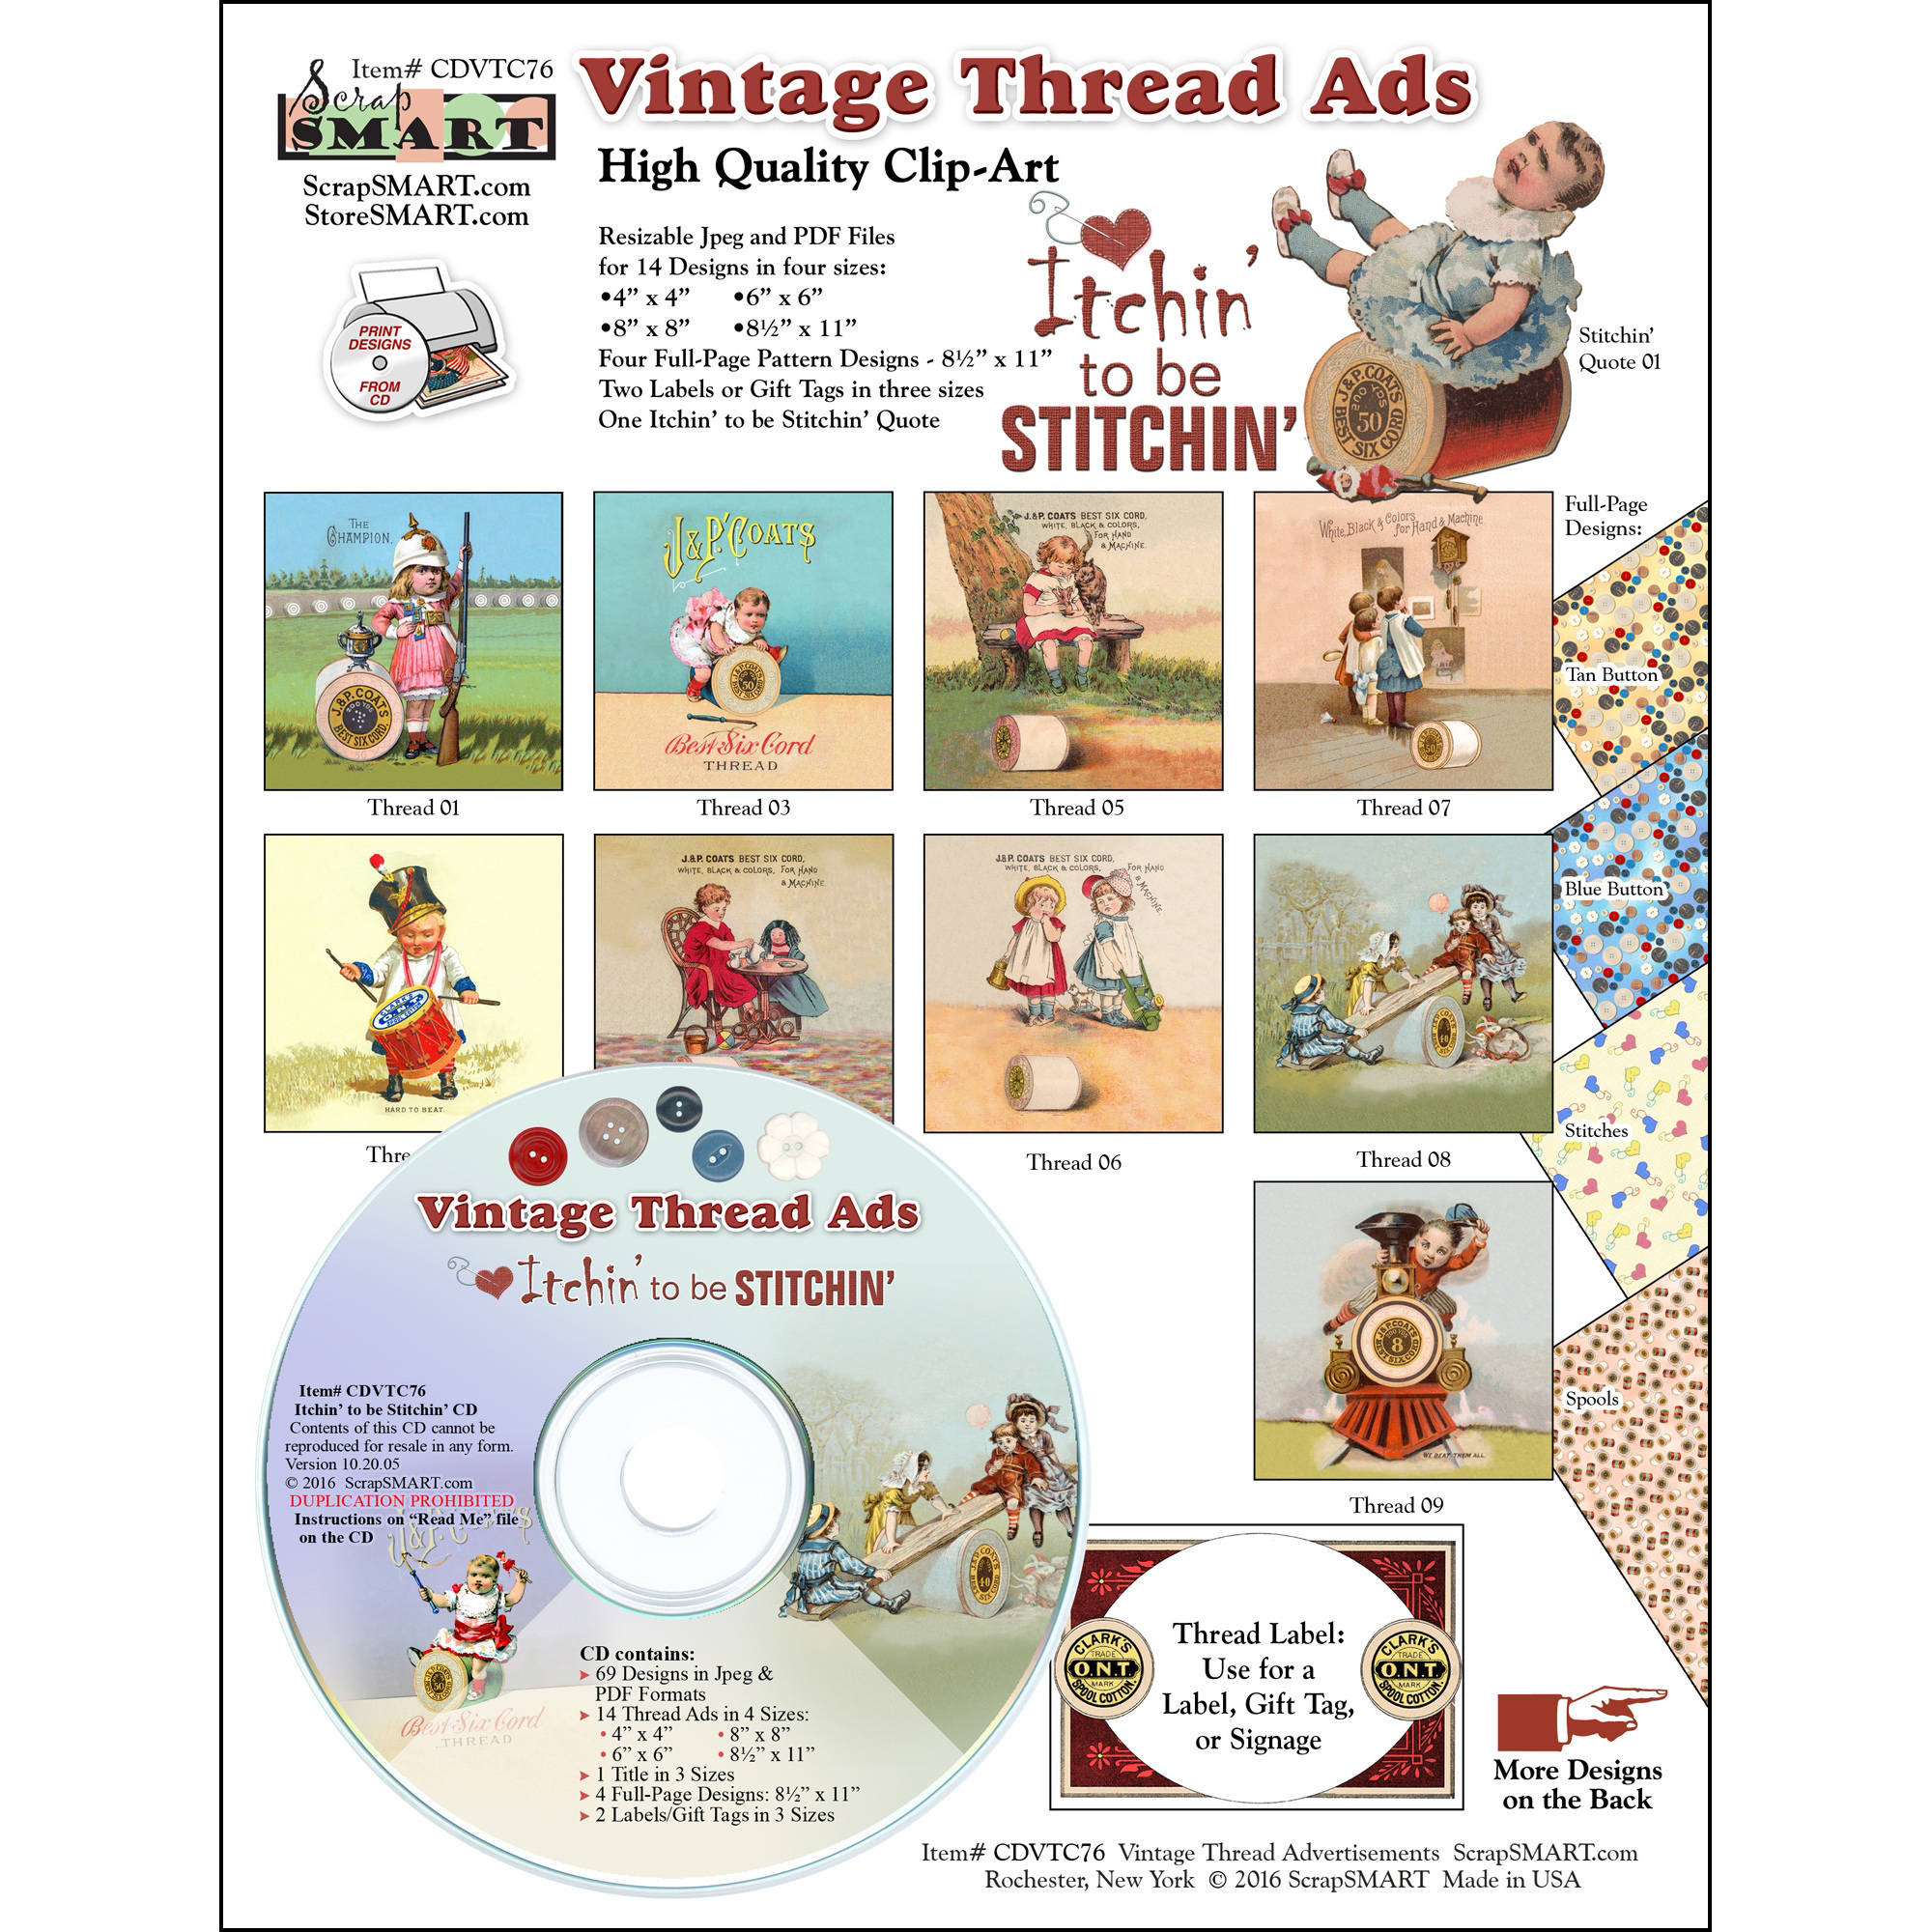 ScrapSMART Vintage Thread Ads CD-ROM, Itchin' to be Stitchin' Clip-Art Images for Scrapbook, Craft, Sewing